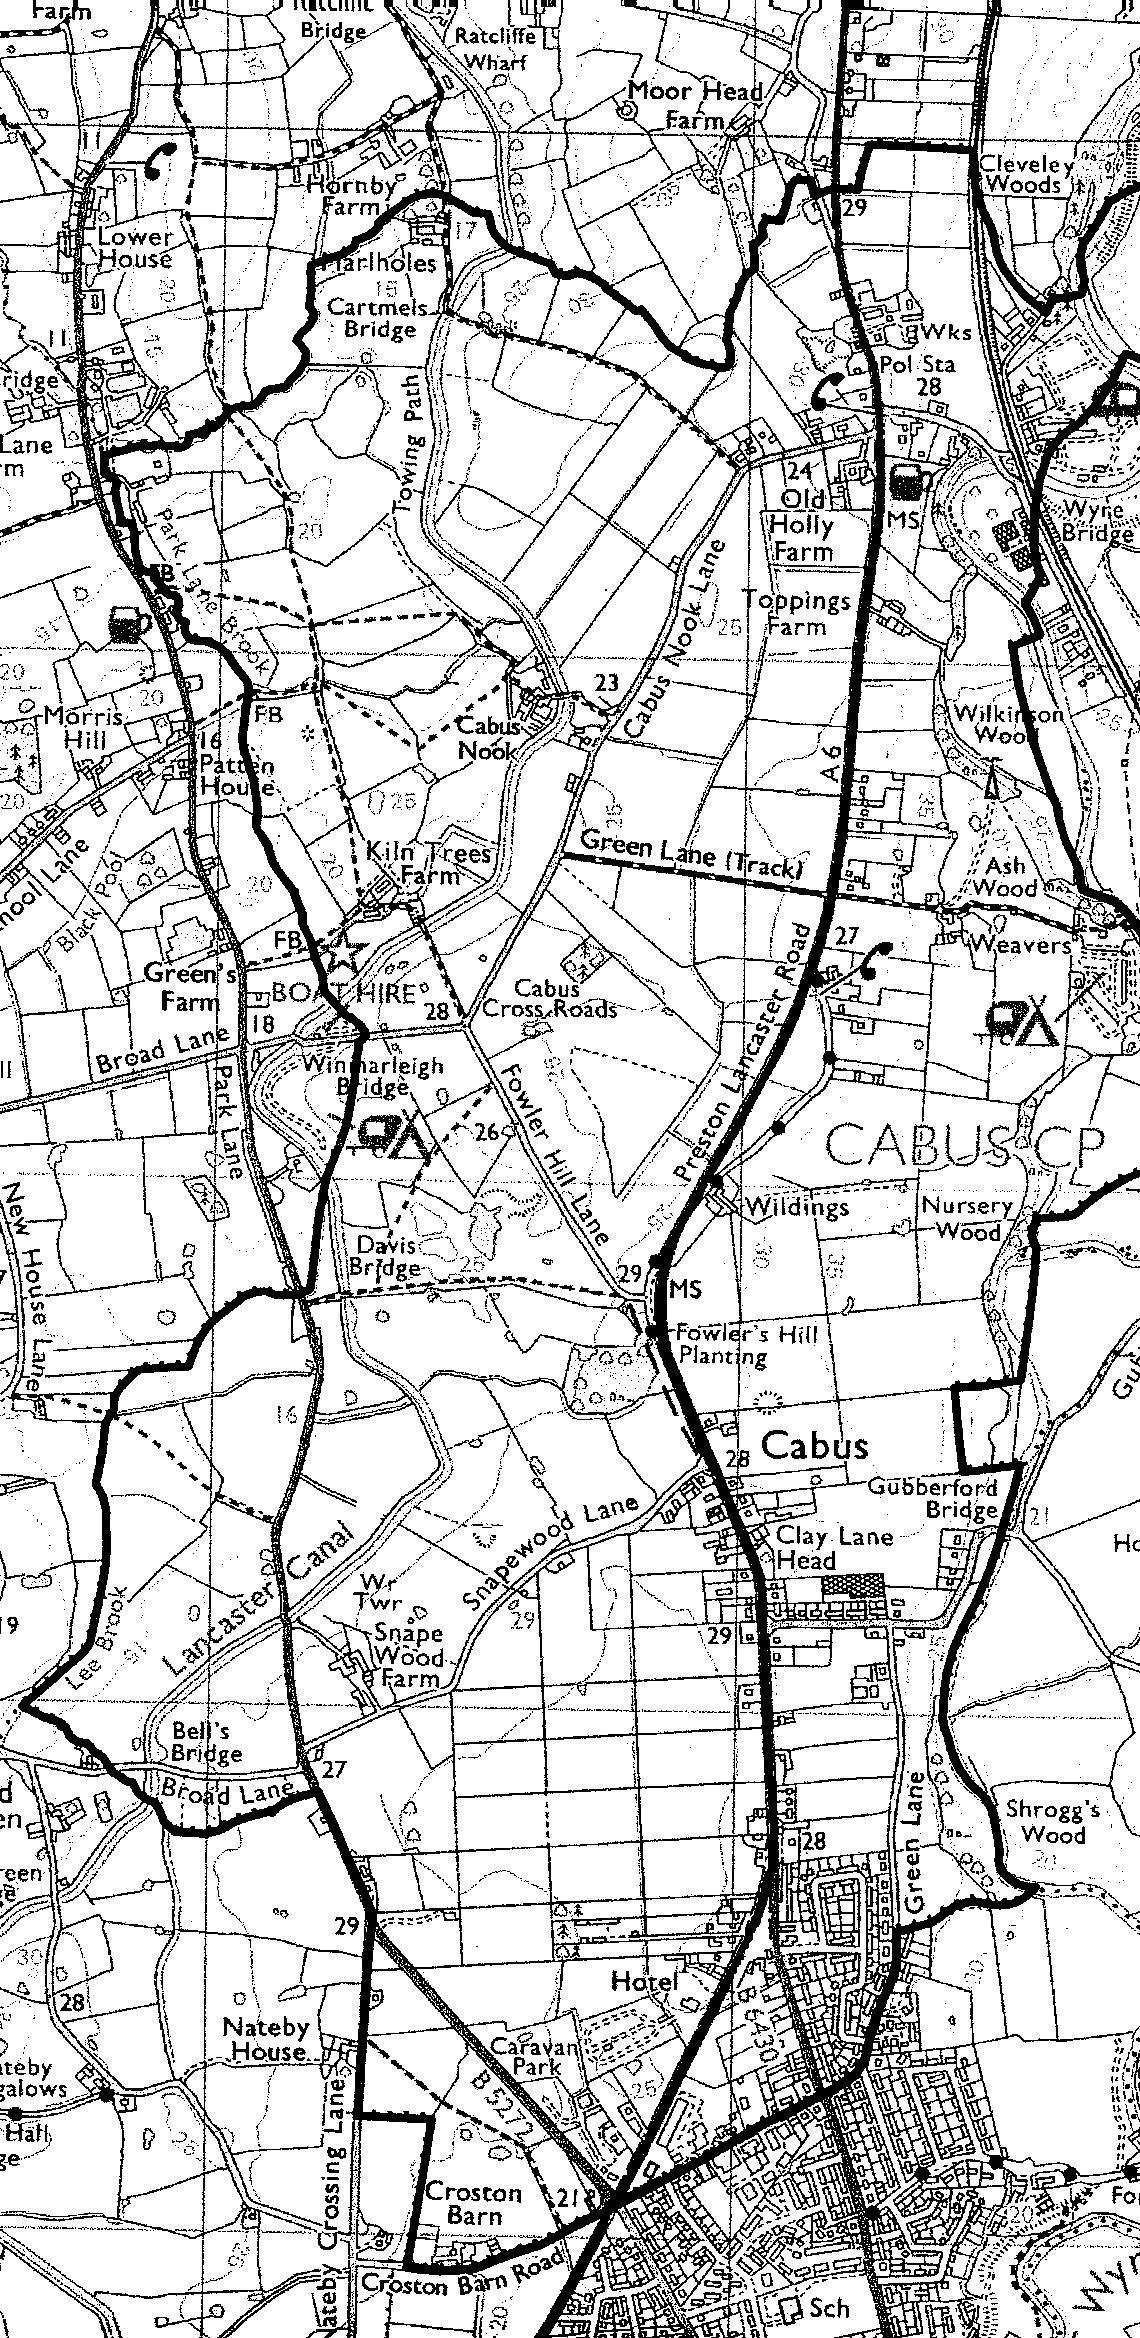 Black and white map of Cabus